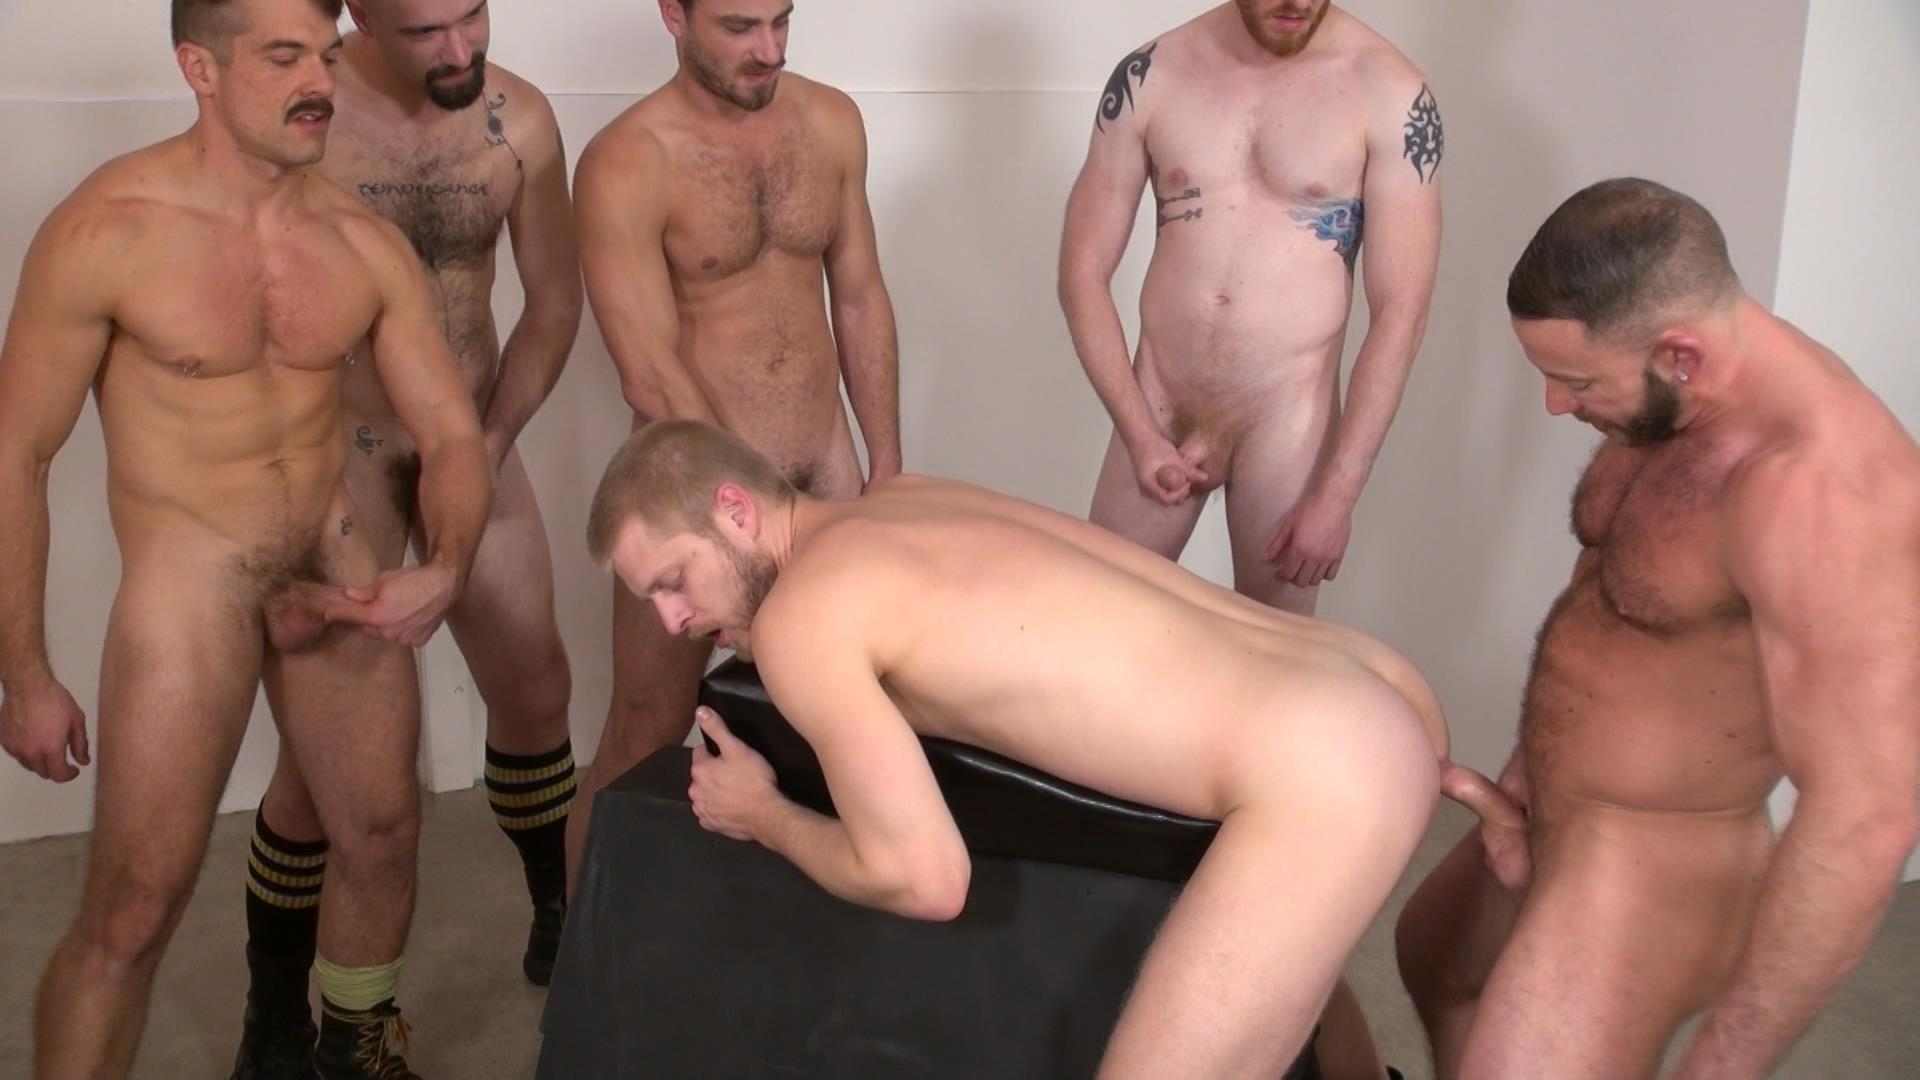 Raw-and-Rough-Bareback-Gay-Sex-Orgy-Amateur-Gay-Porn-05 Six Hairy Hung Guys Pounding A Bottom At A Bareback Sex Party